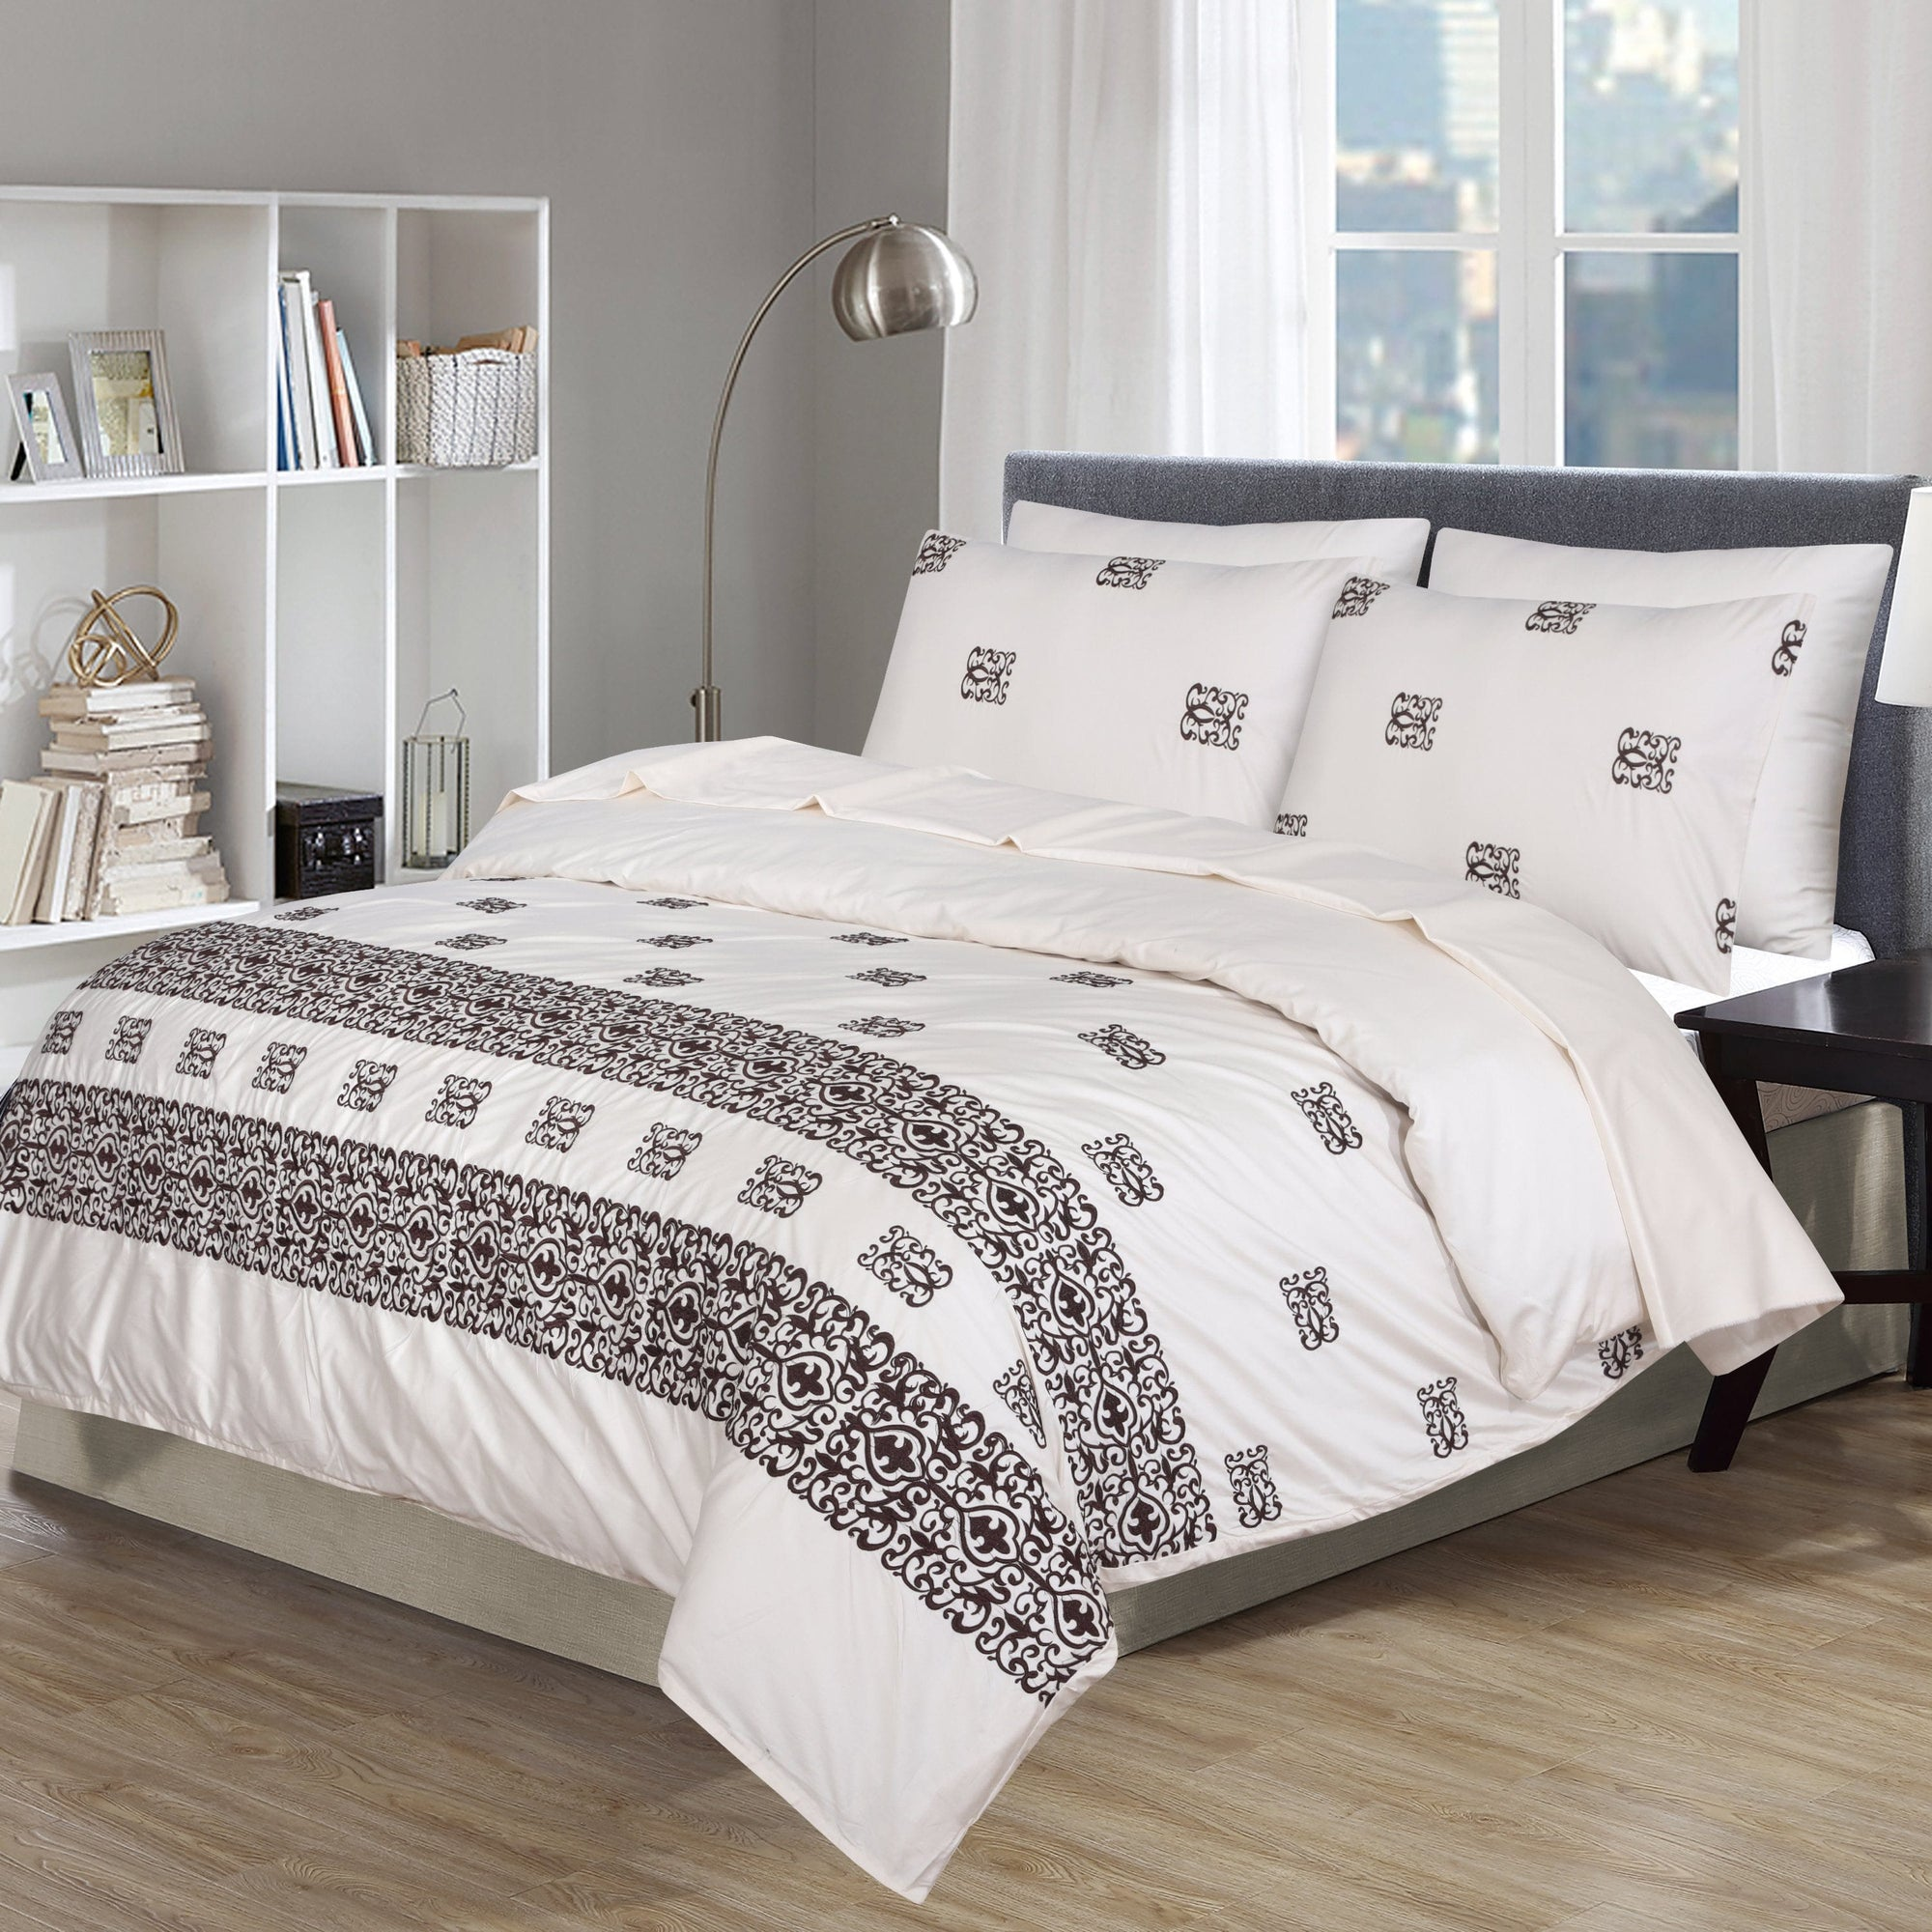 Grace D08 - 6PC Embroidered Luxury Sateen Duvet Cover Set King Size